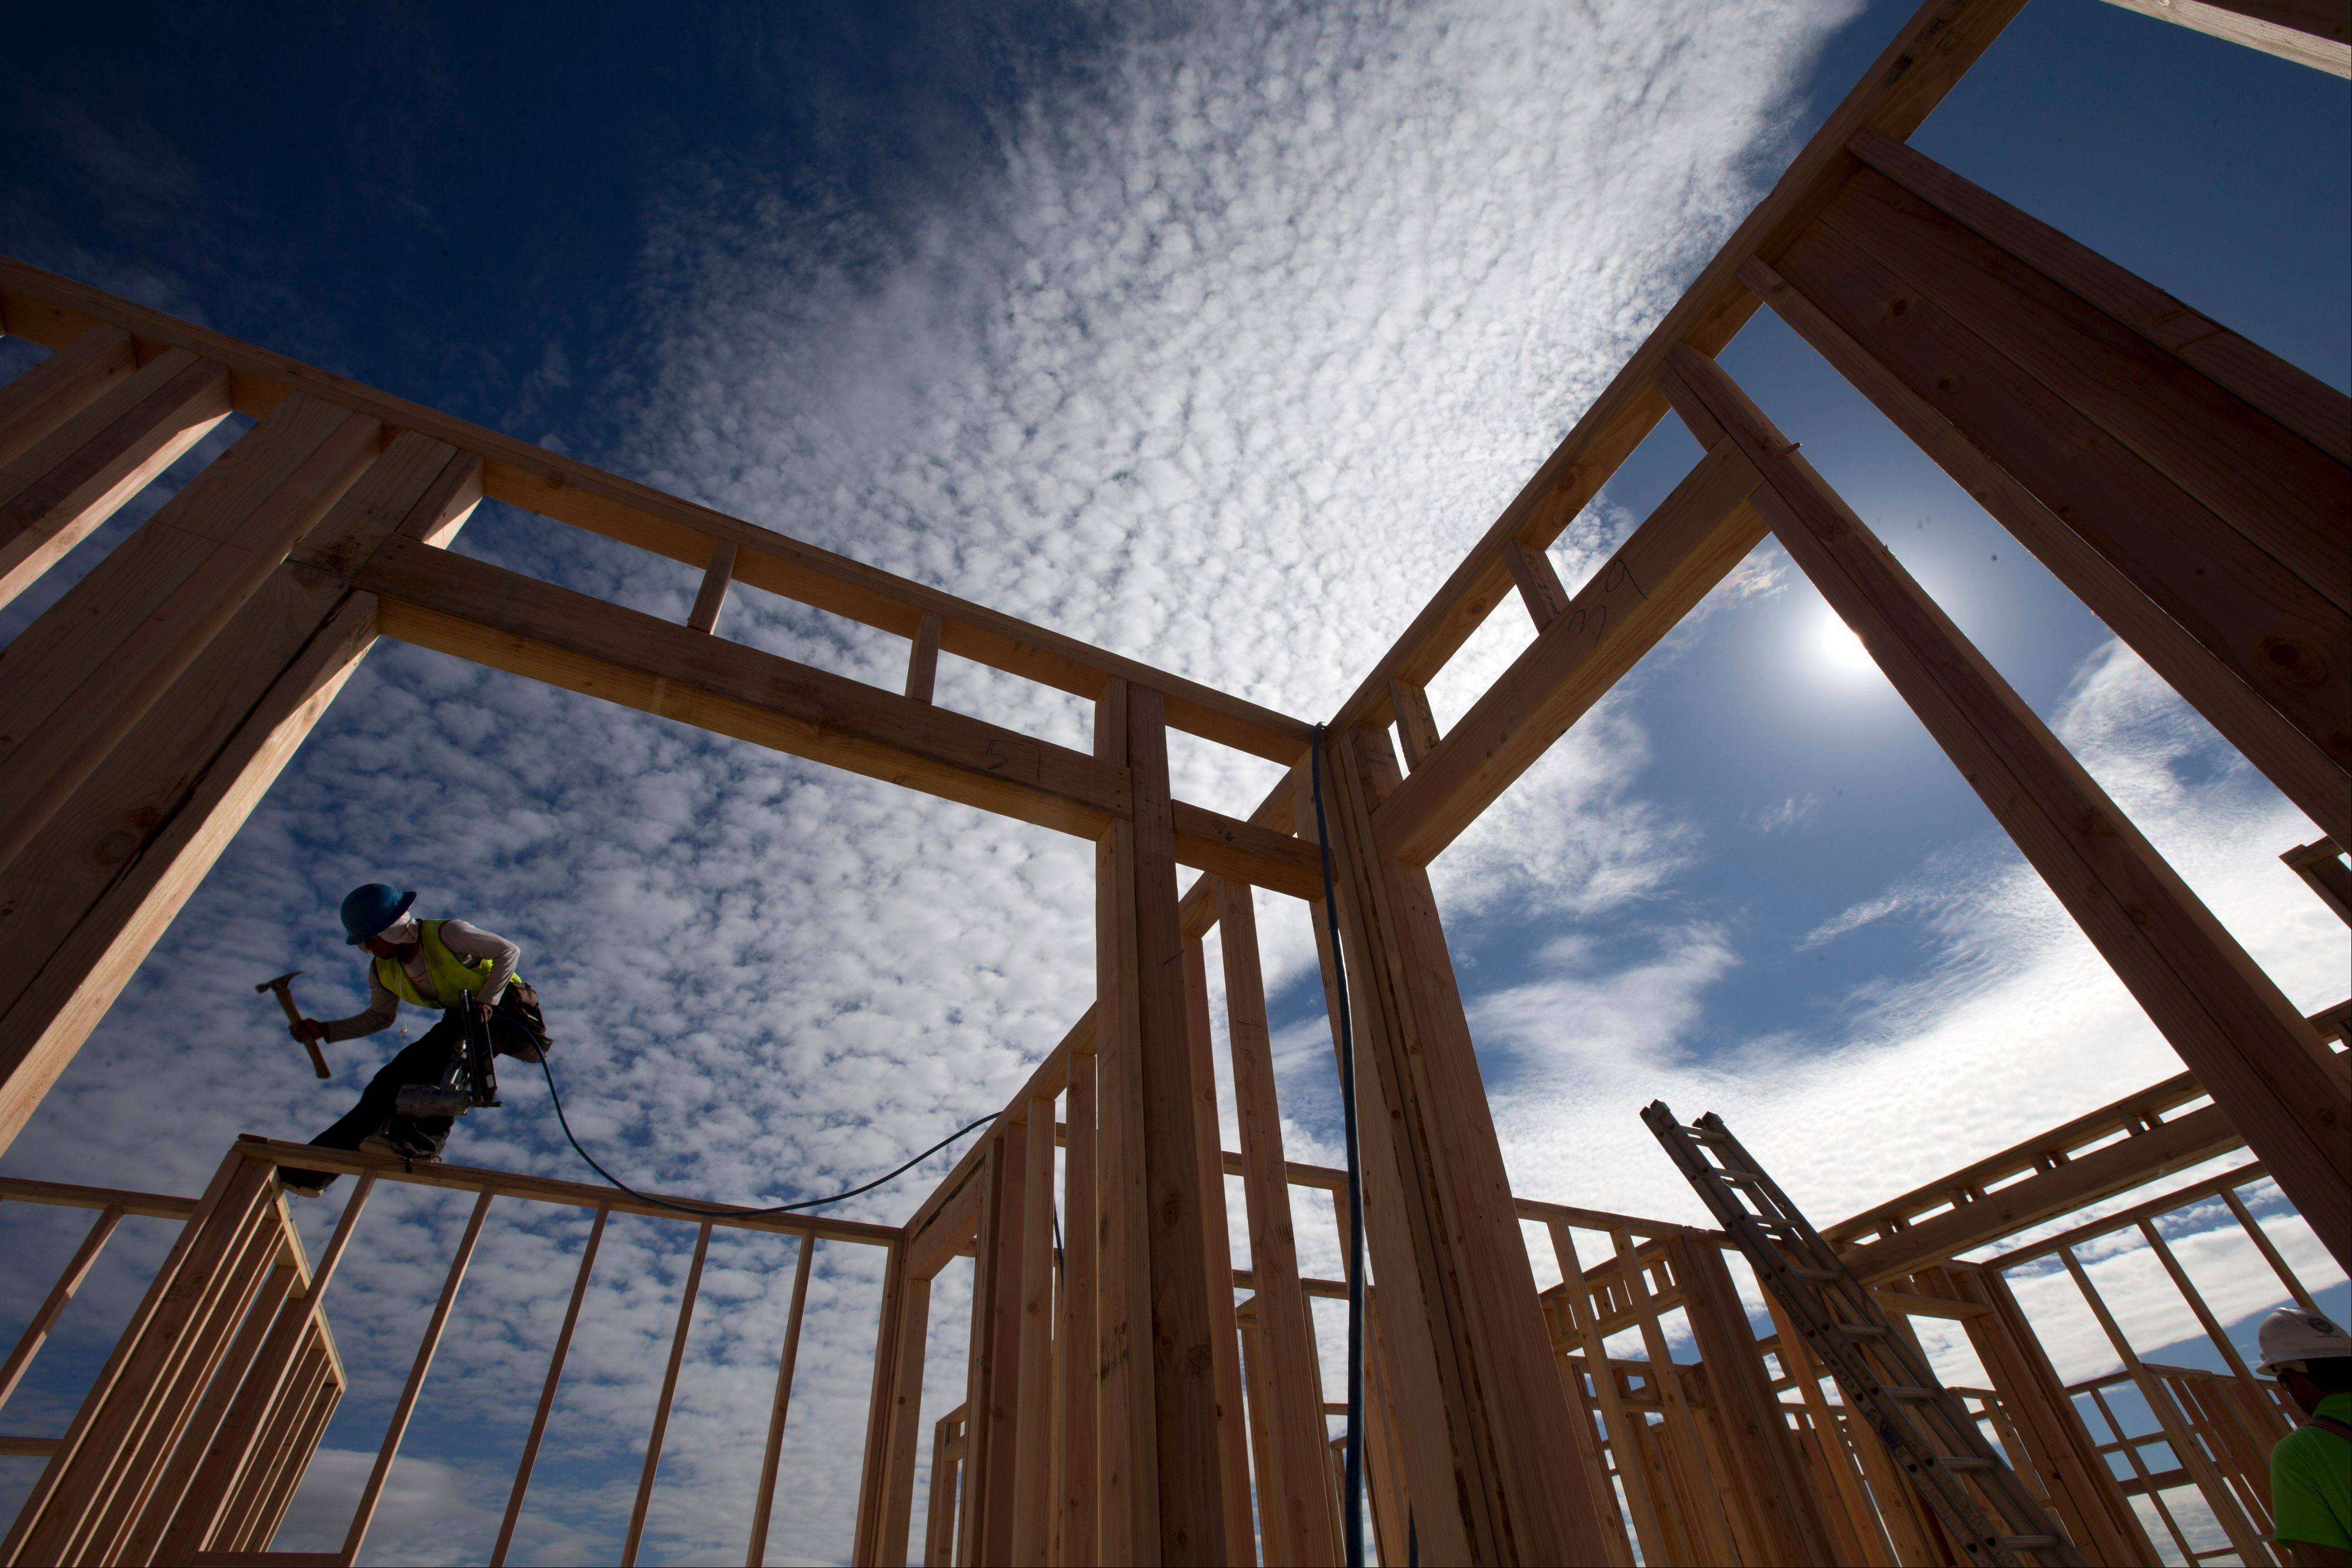 Construction worker Elabert Salazar works on a house frame for a new home in Chula Vista, Calif. In 2012, the unemployment rate dipped to a four-year-low of 7.7 percent, stock markets rose, builders broke ground on more homes, and November was the best sales month in nearly five years for U.S. automakers.